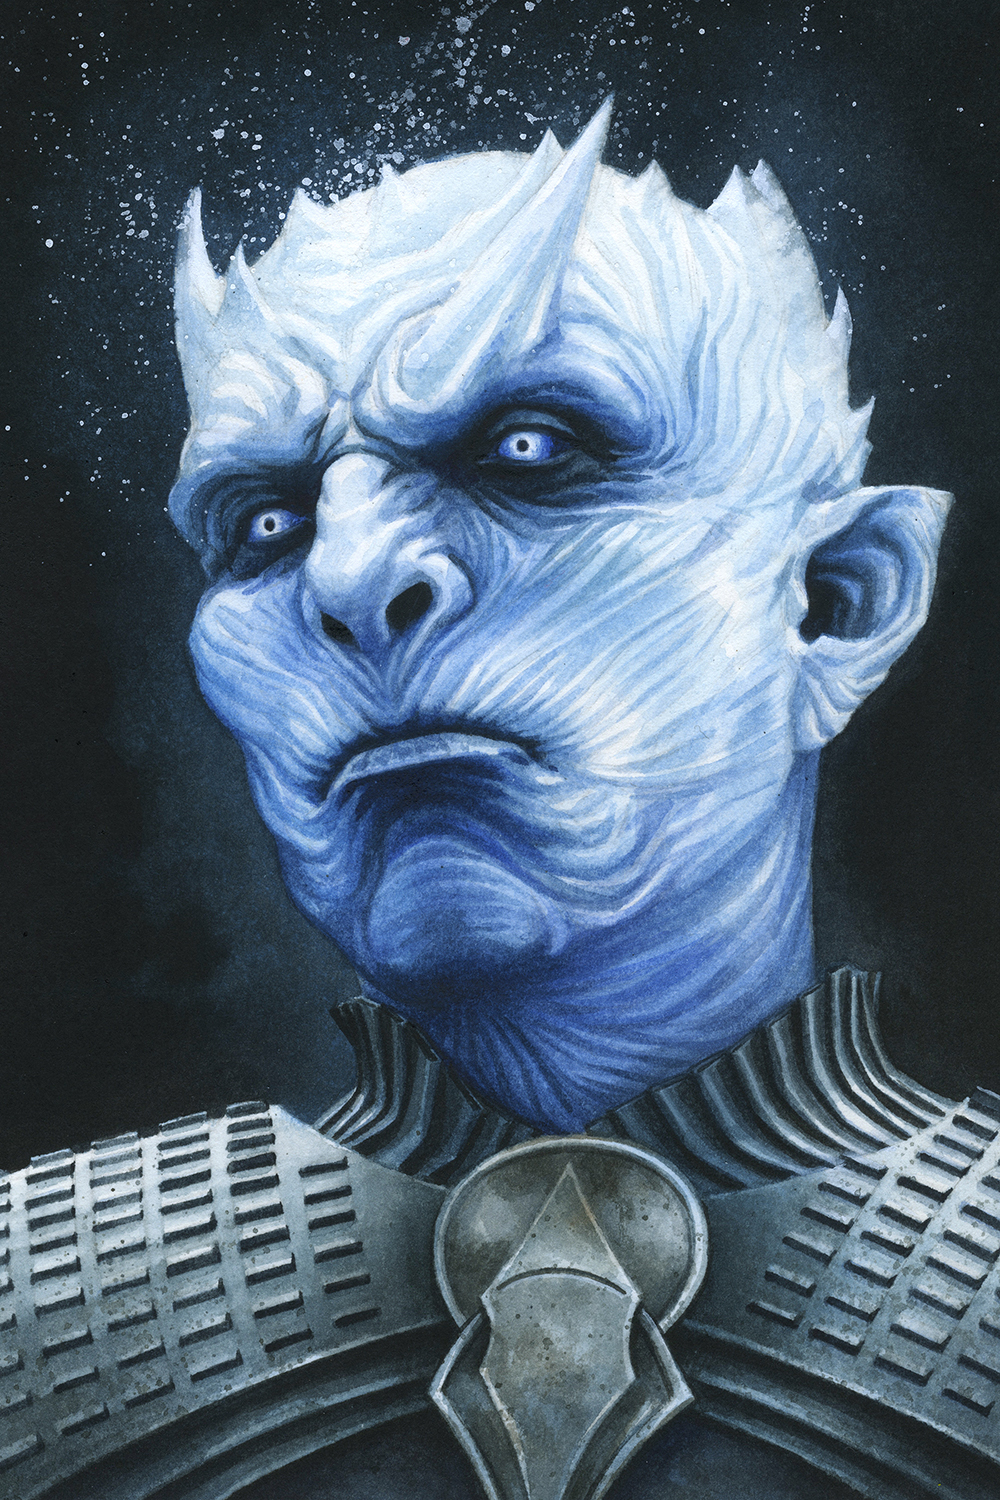 Negron_LotT_Night's King_72.jpg